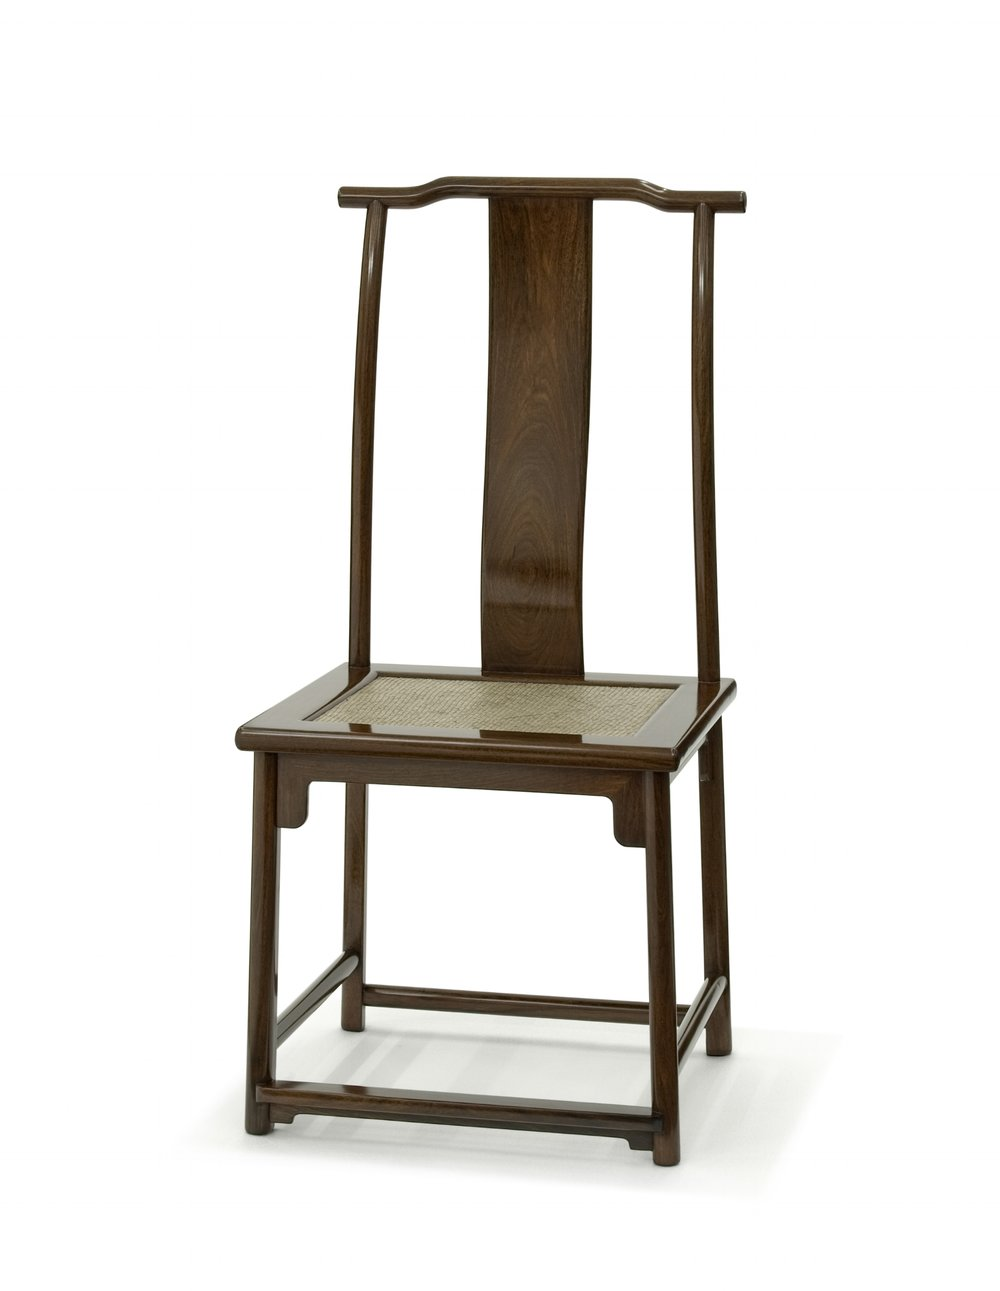 ....Bespoke Ming Style Chinese furniture : Side chair..特别定制明式中式家具: 靠背椅....